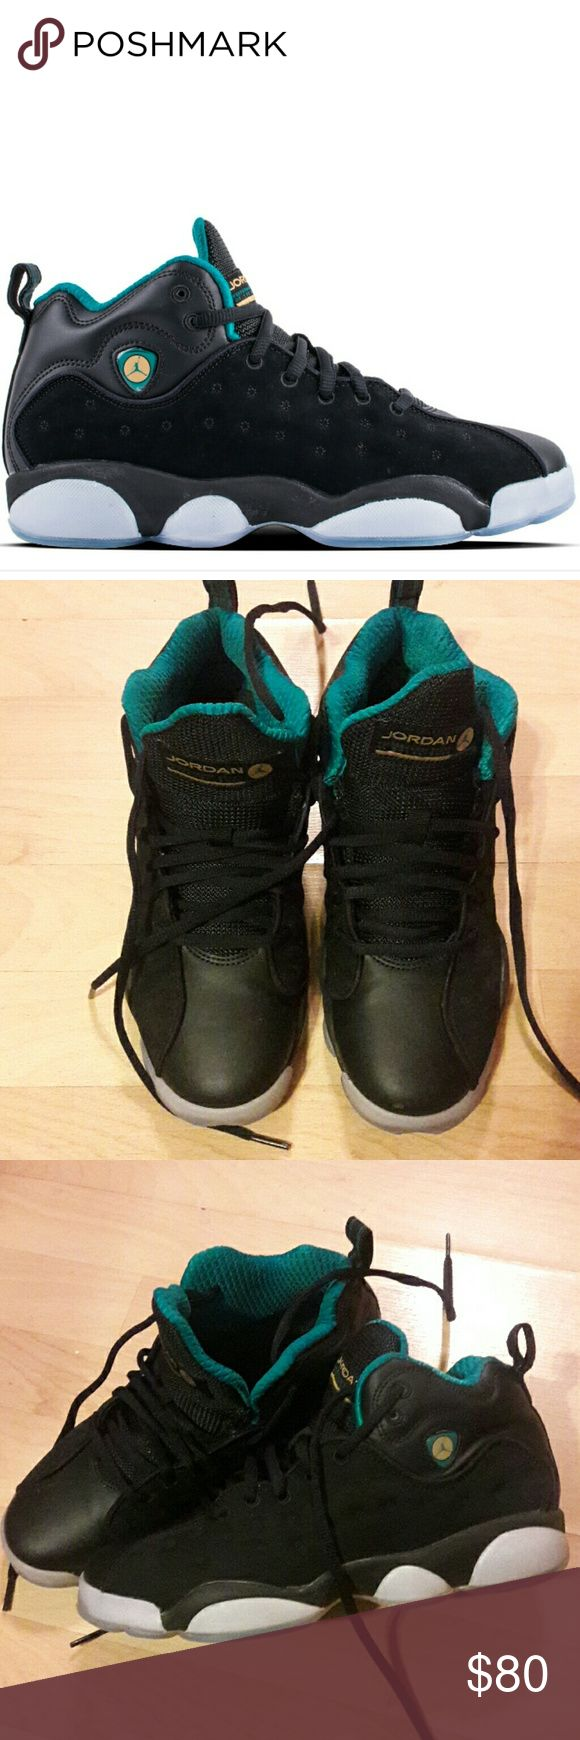 Jordan Jumpman team 2 These Jordans were worn for about a week. They are near perfect condition as you can see in pics. Except for a small scuff mark on the front of the left shoe. You can see in the pic the small scuff. There are no creases  in front of shoes. I am willing to trade for a size 8.5 pair of jordans in similar condition. I do not have original box and the blue is more of a dark turquoise color. I do consider all offers. Jordan Shoes Sneakers